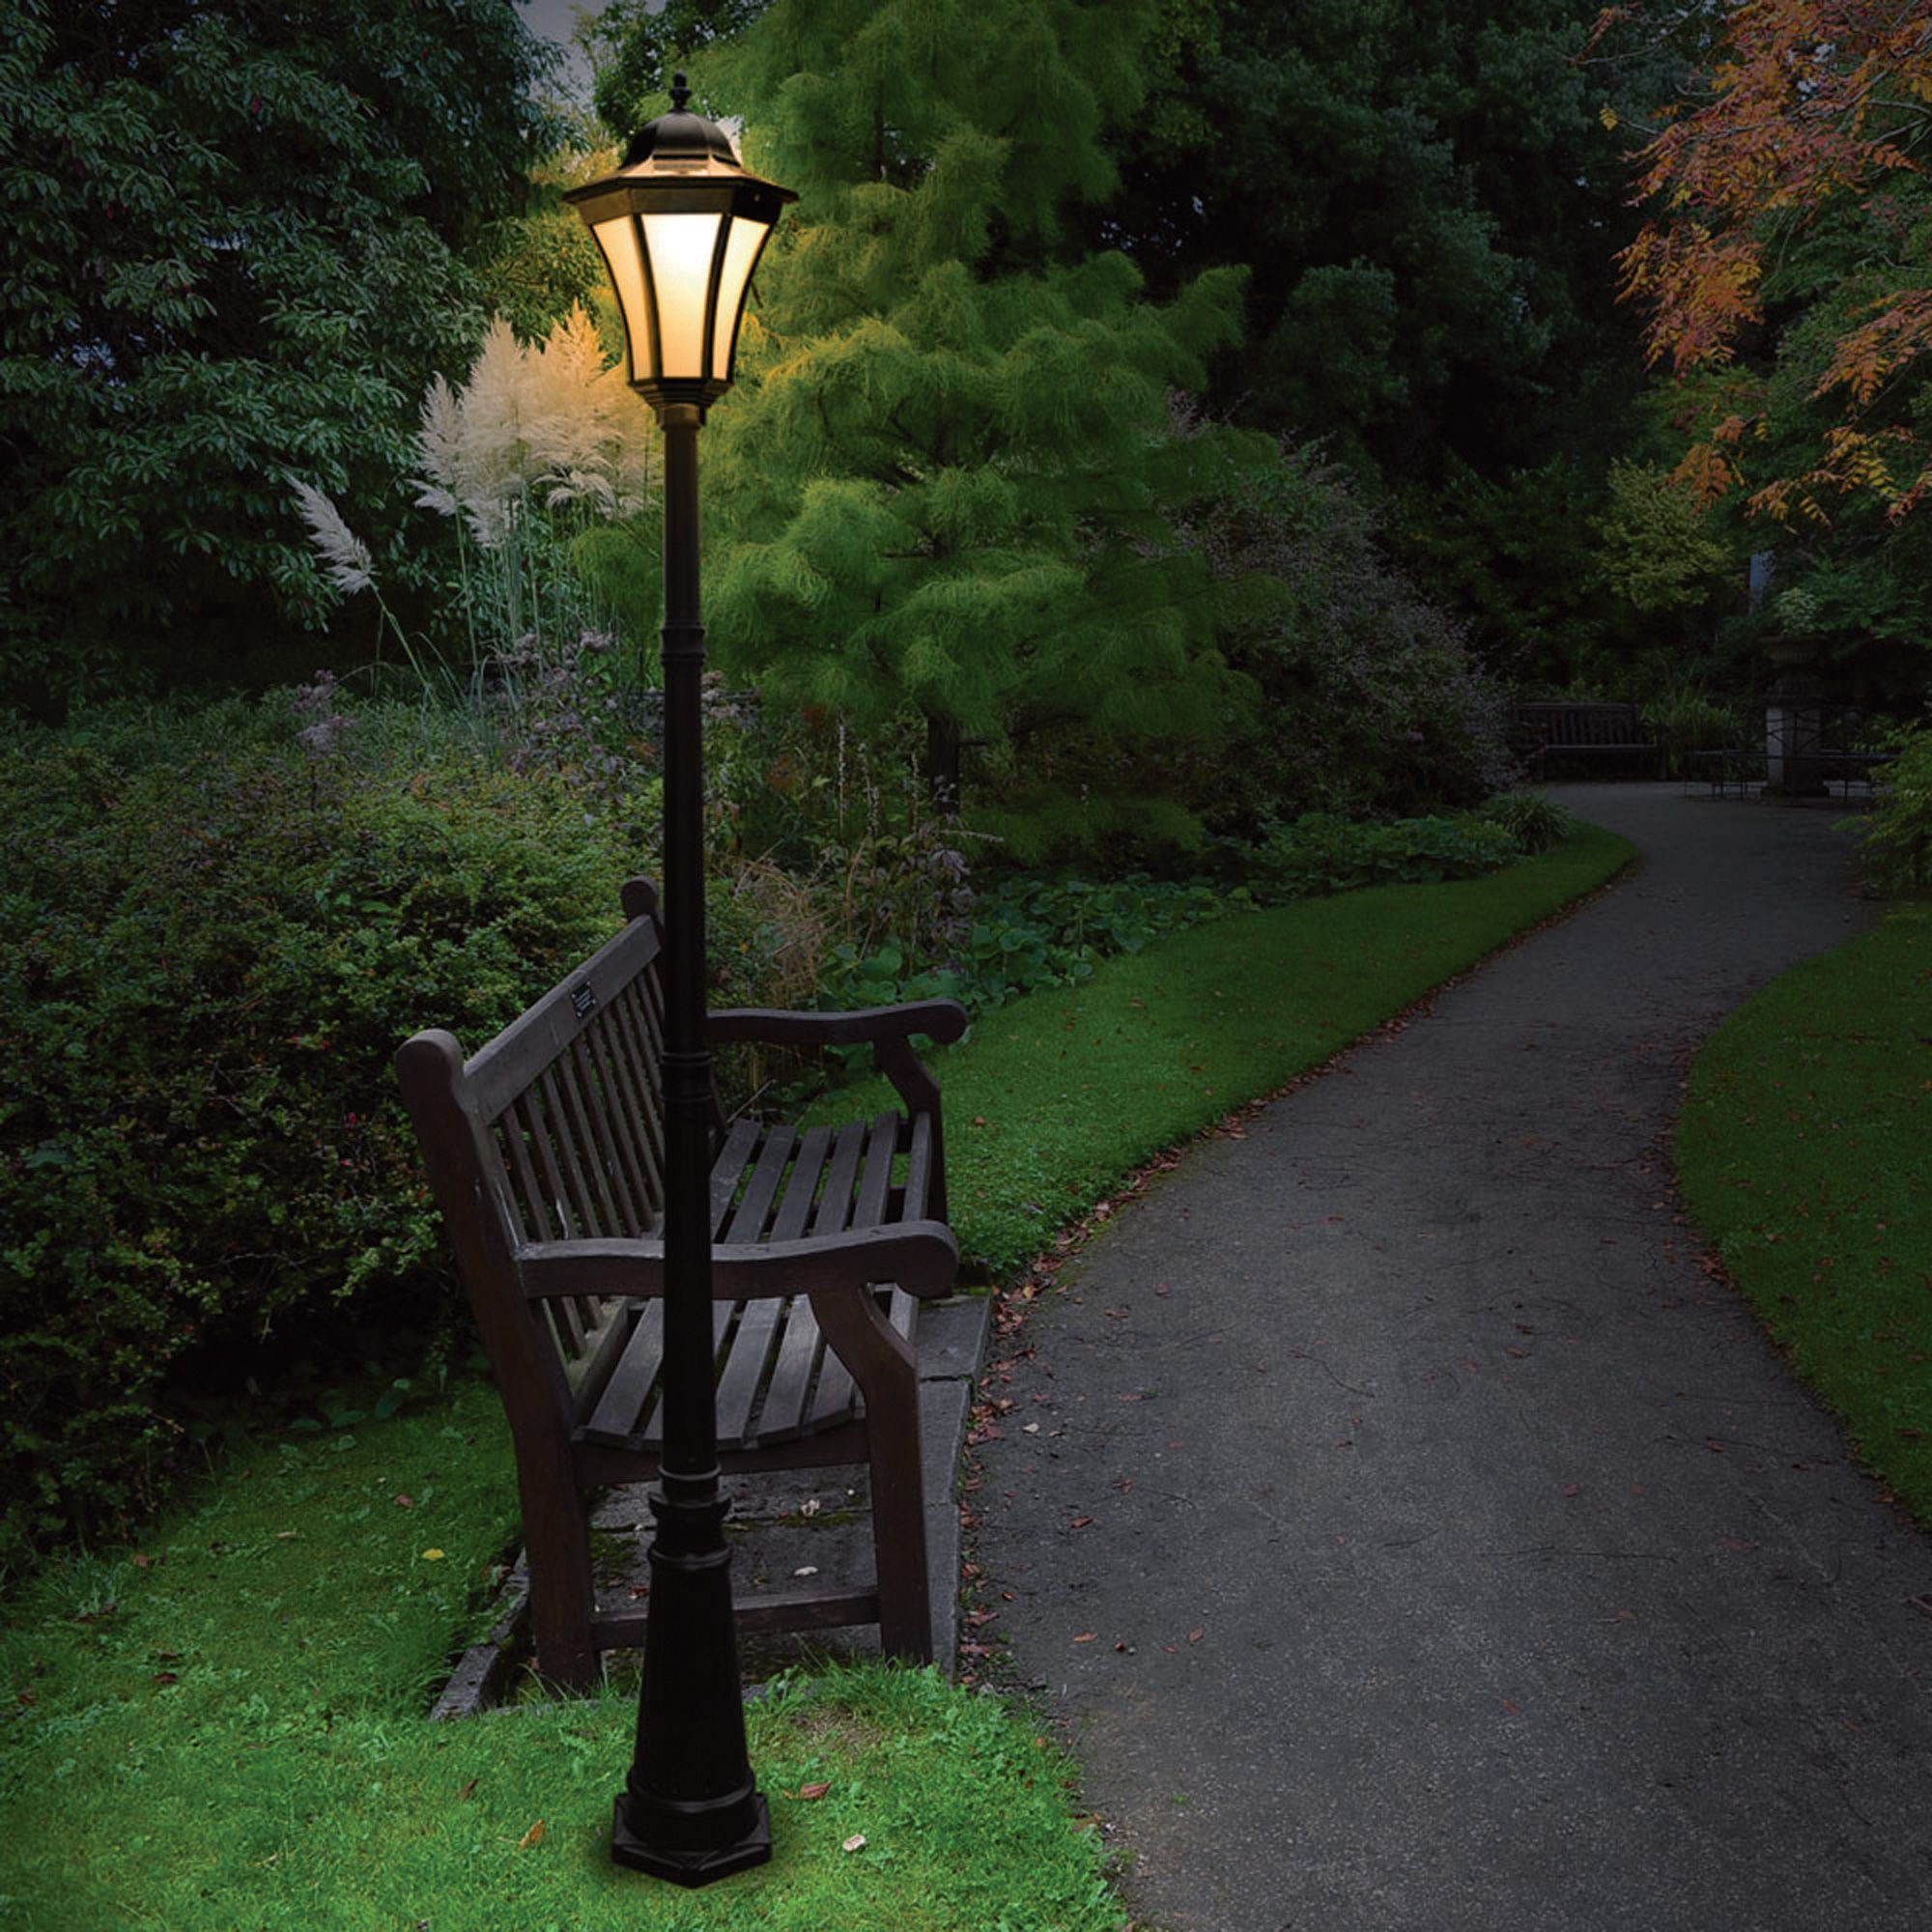 Outdoor Lighting Ideas For Fence Outdoorlightingideas Outdoor Lamp Posts Rustic Outdoor Lighting Solar Lamp Post